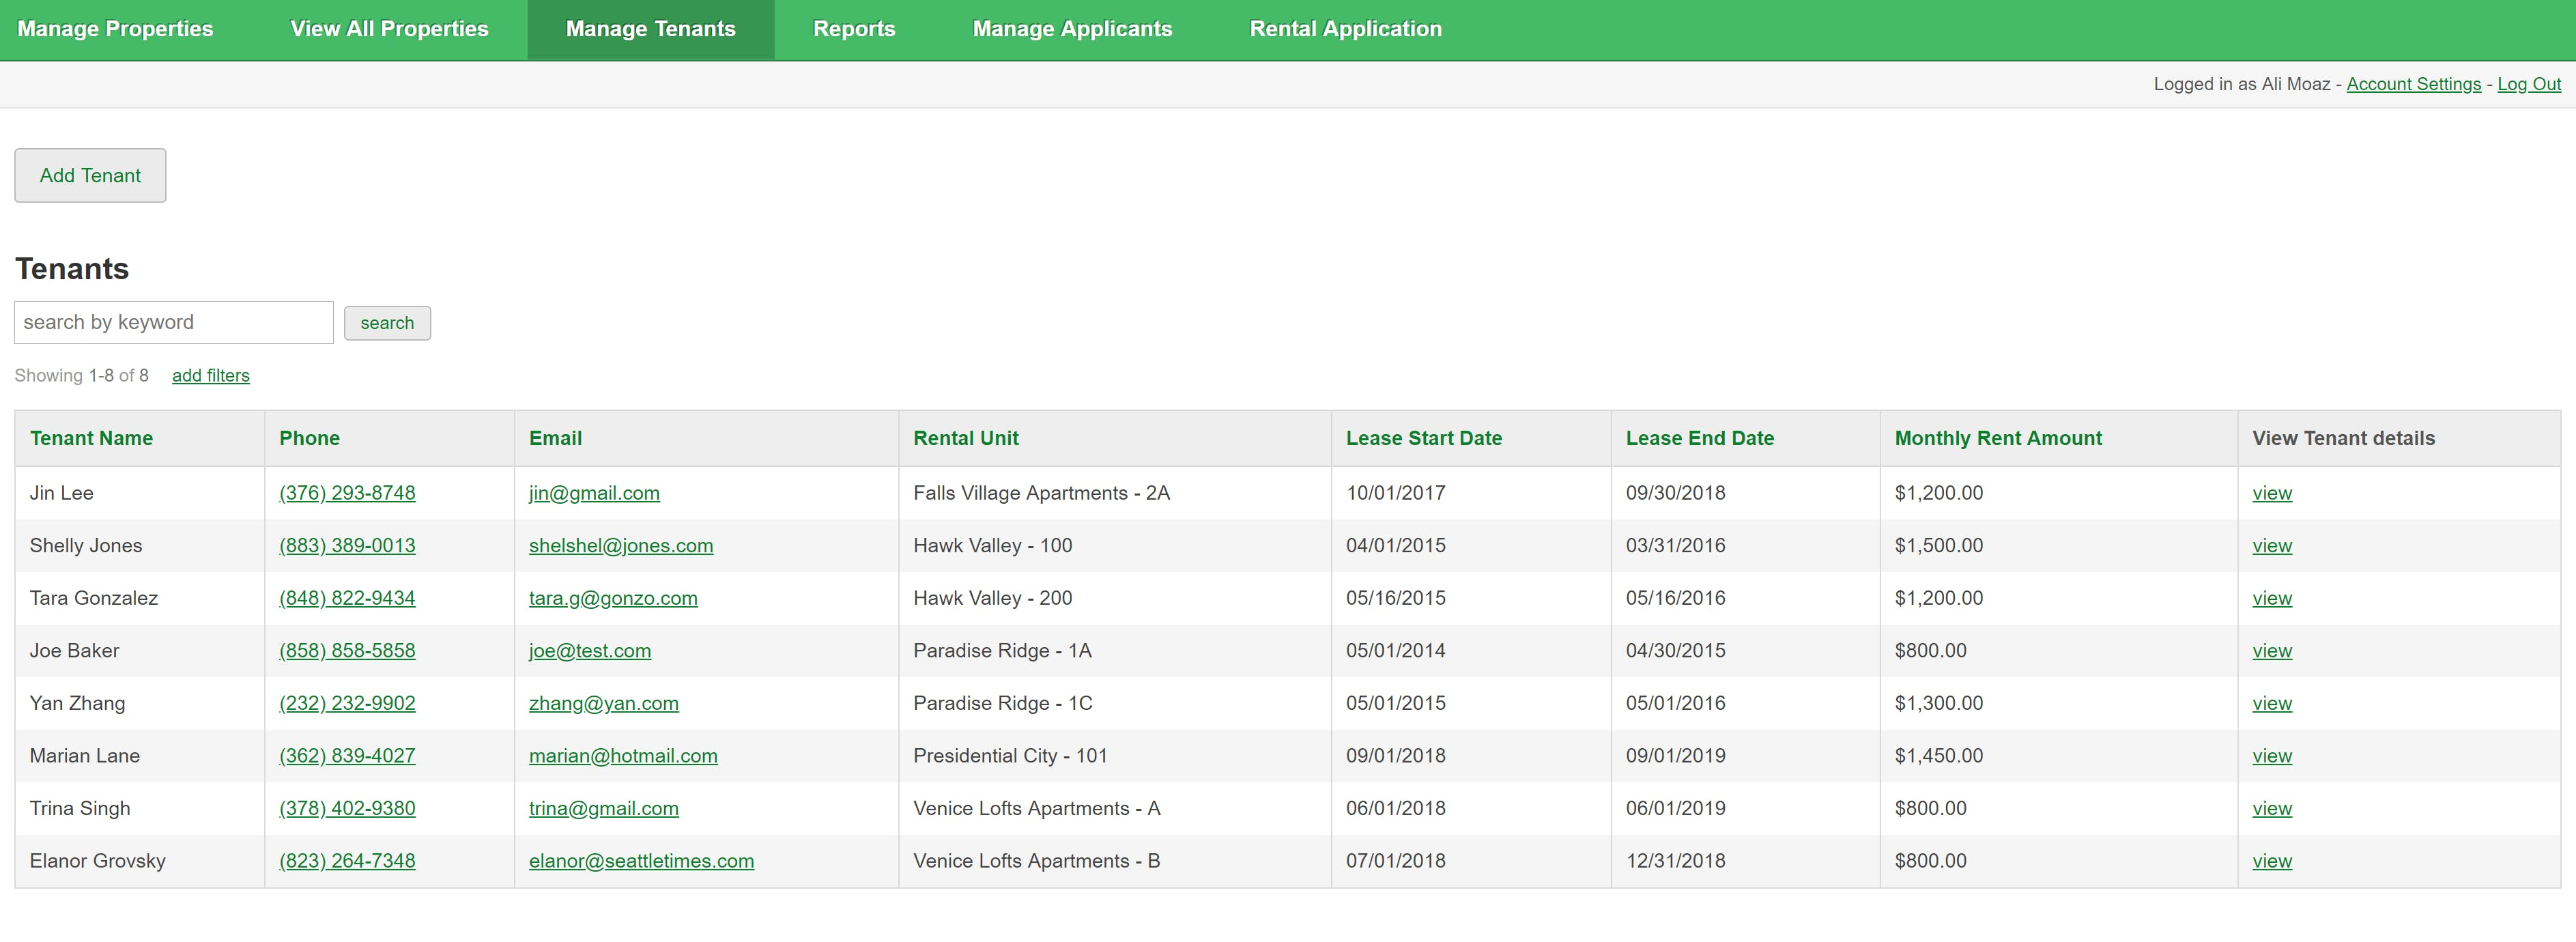 Property managers can see all their tenants in one place, including key details such as lease dates and monthly rent amounts.